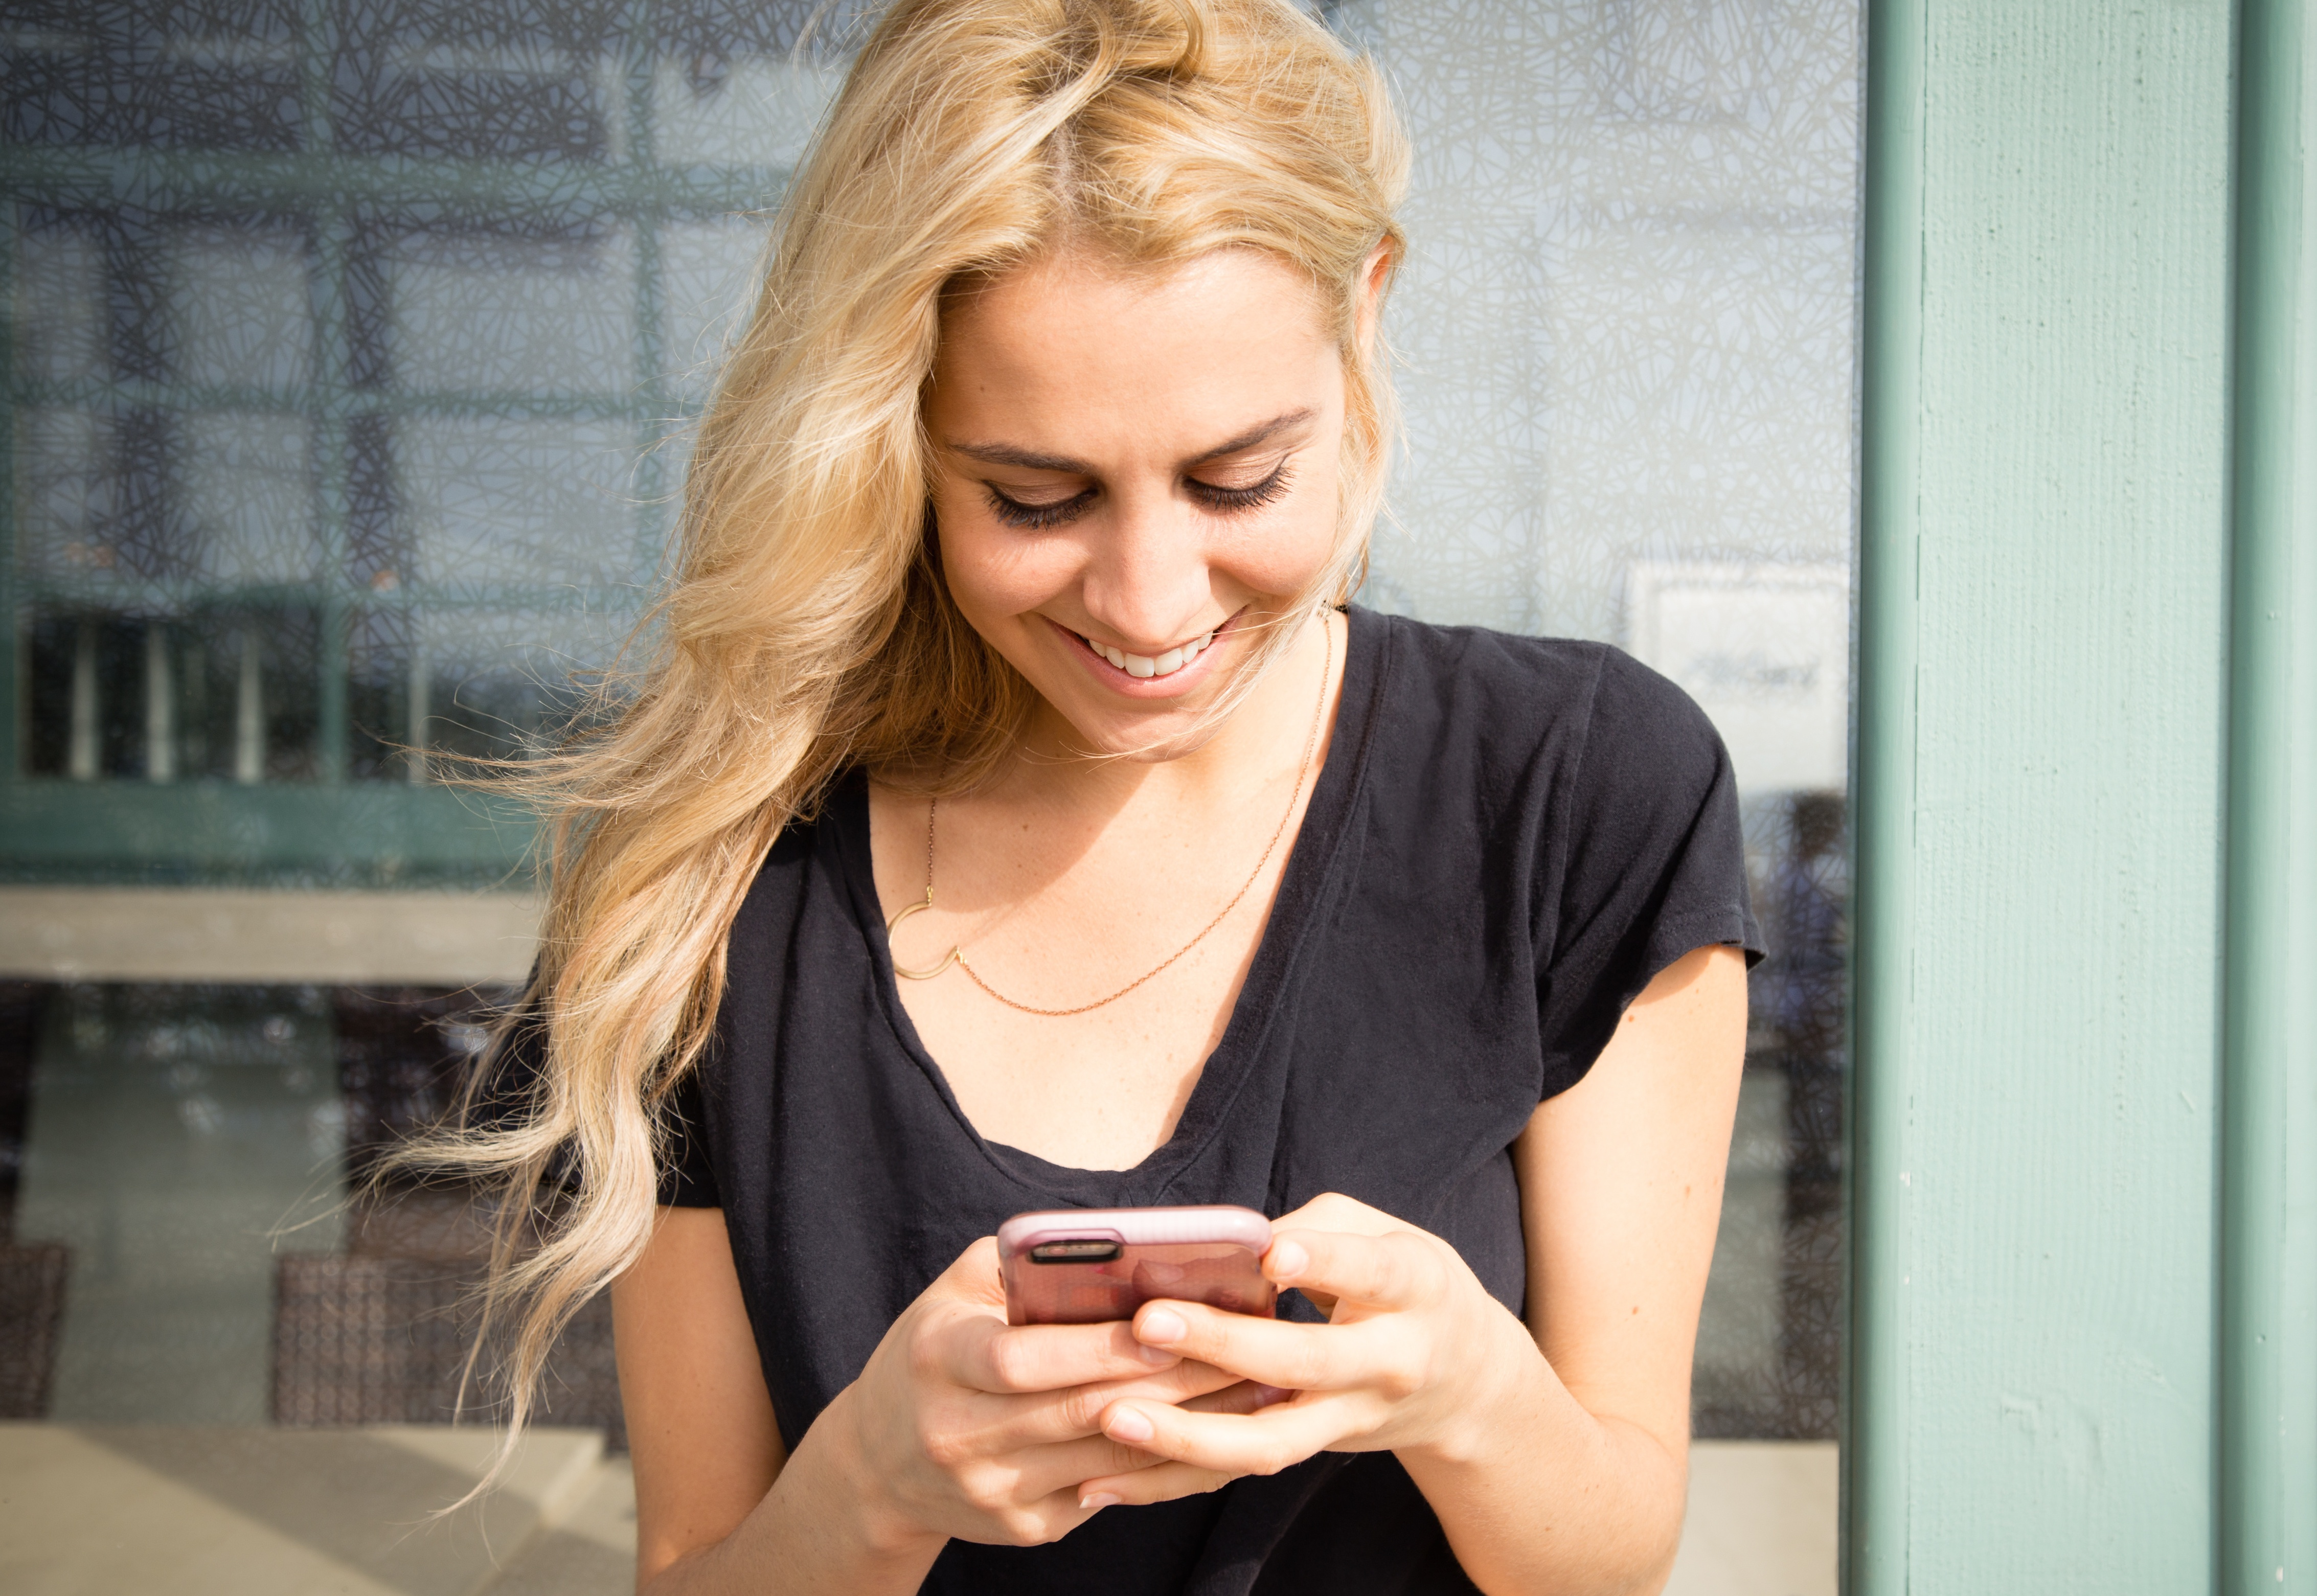 Considerations When Designing mCommerce Experiences for Millennials